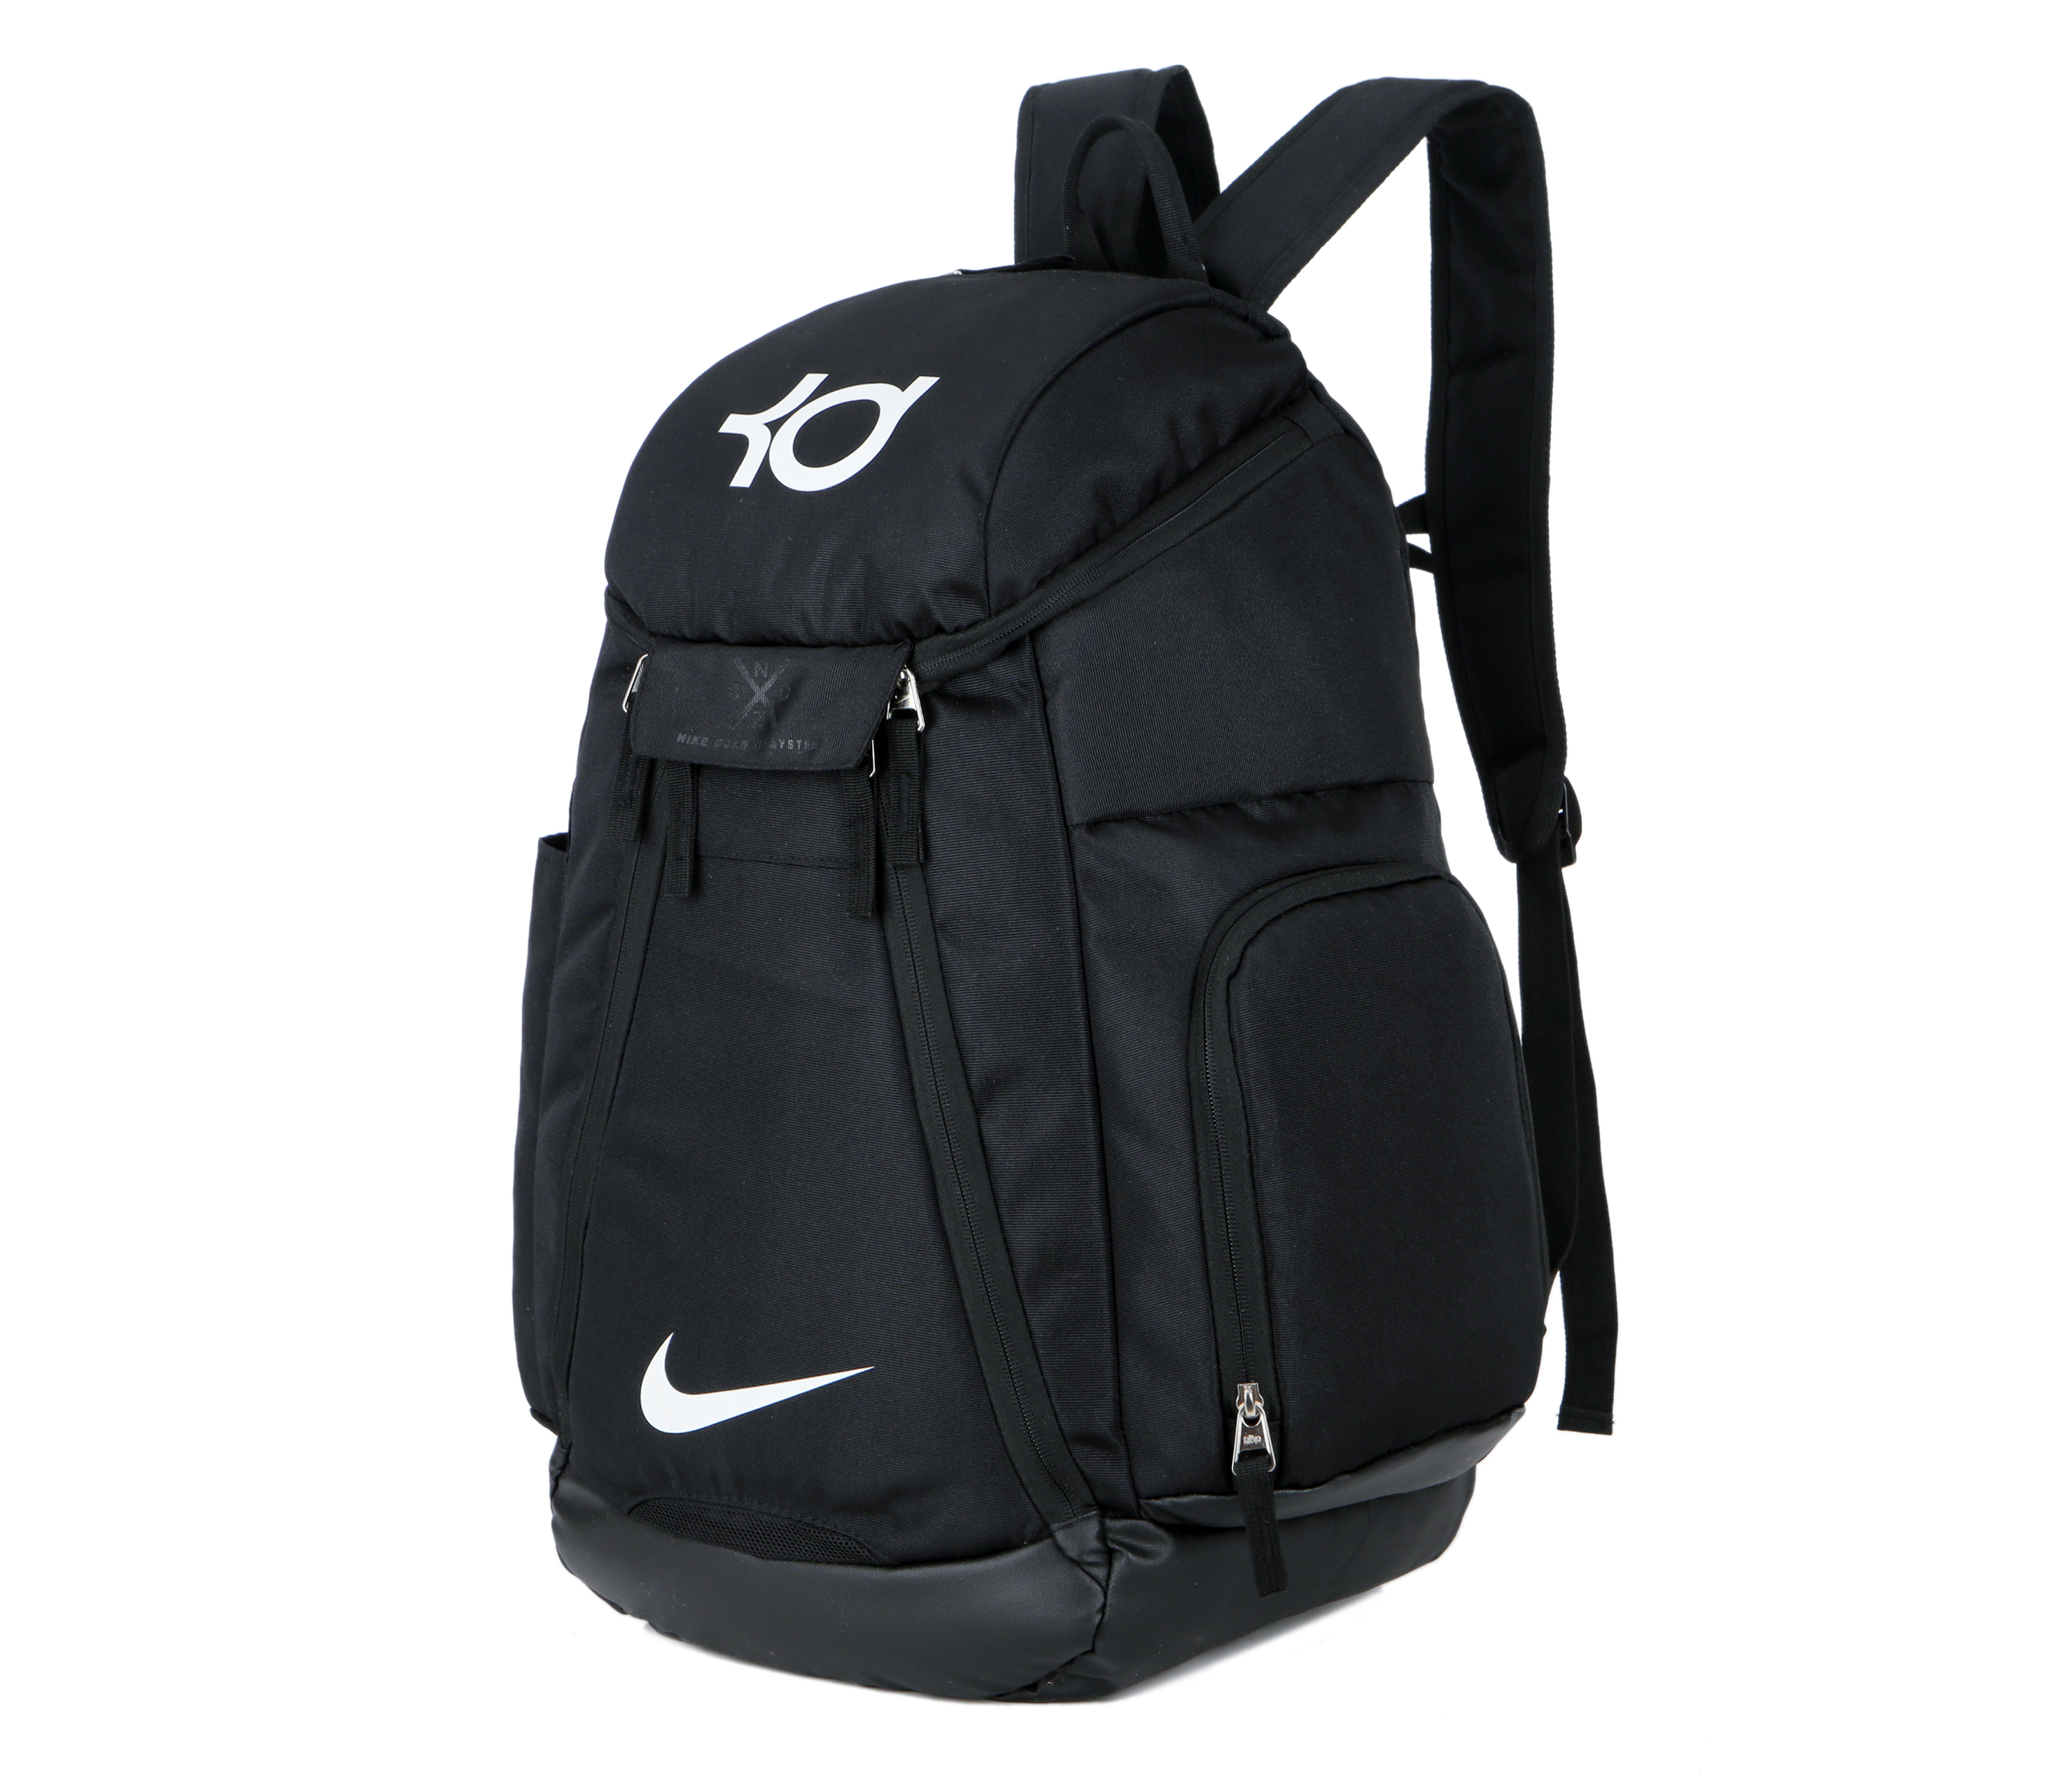 Nike KD Olympic Backpack Black White